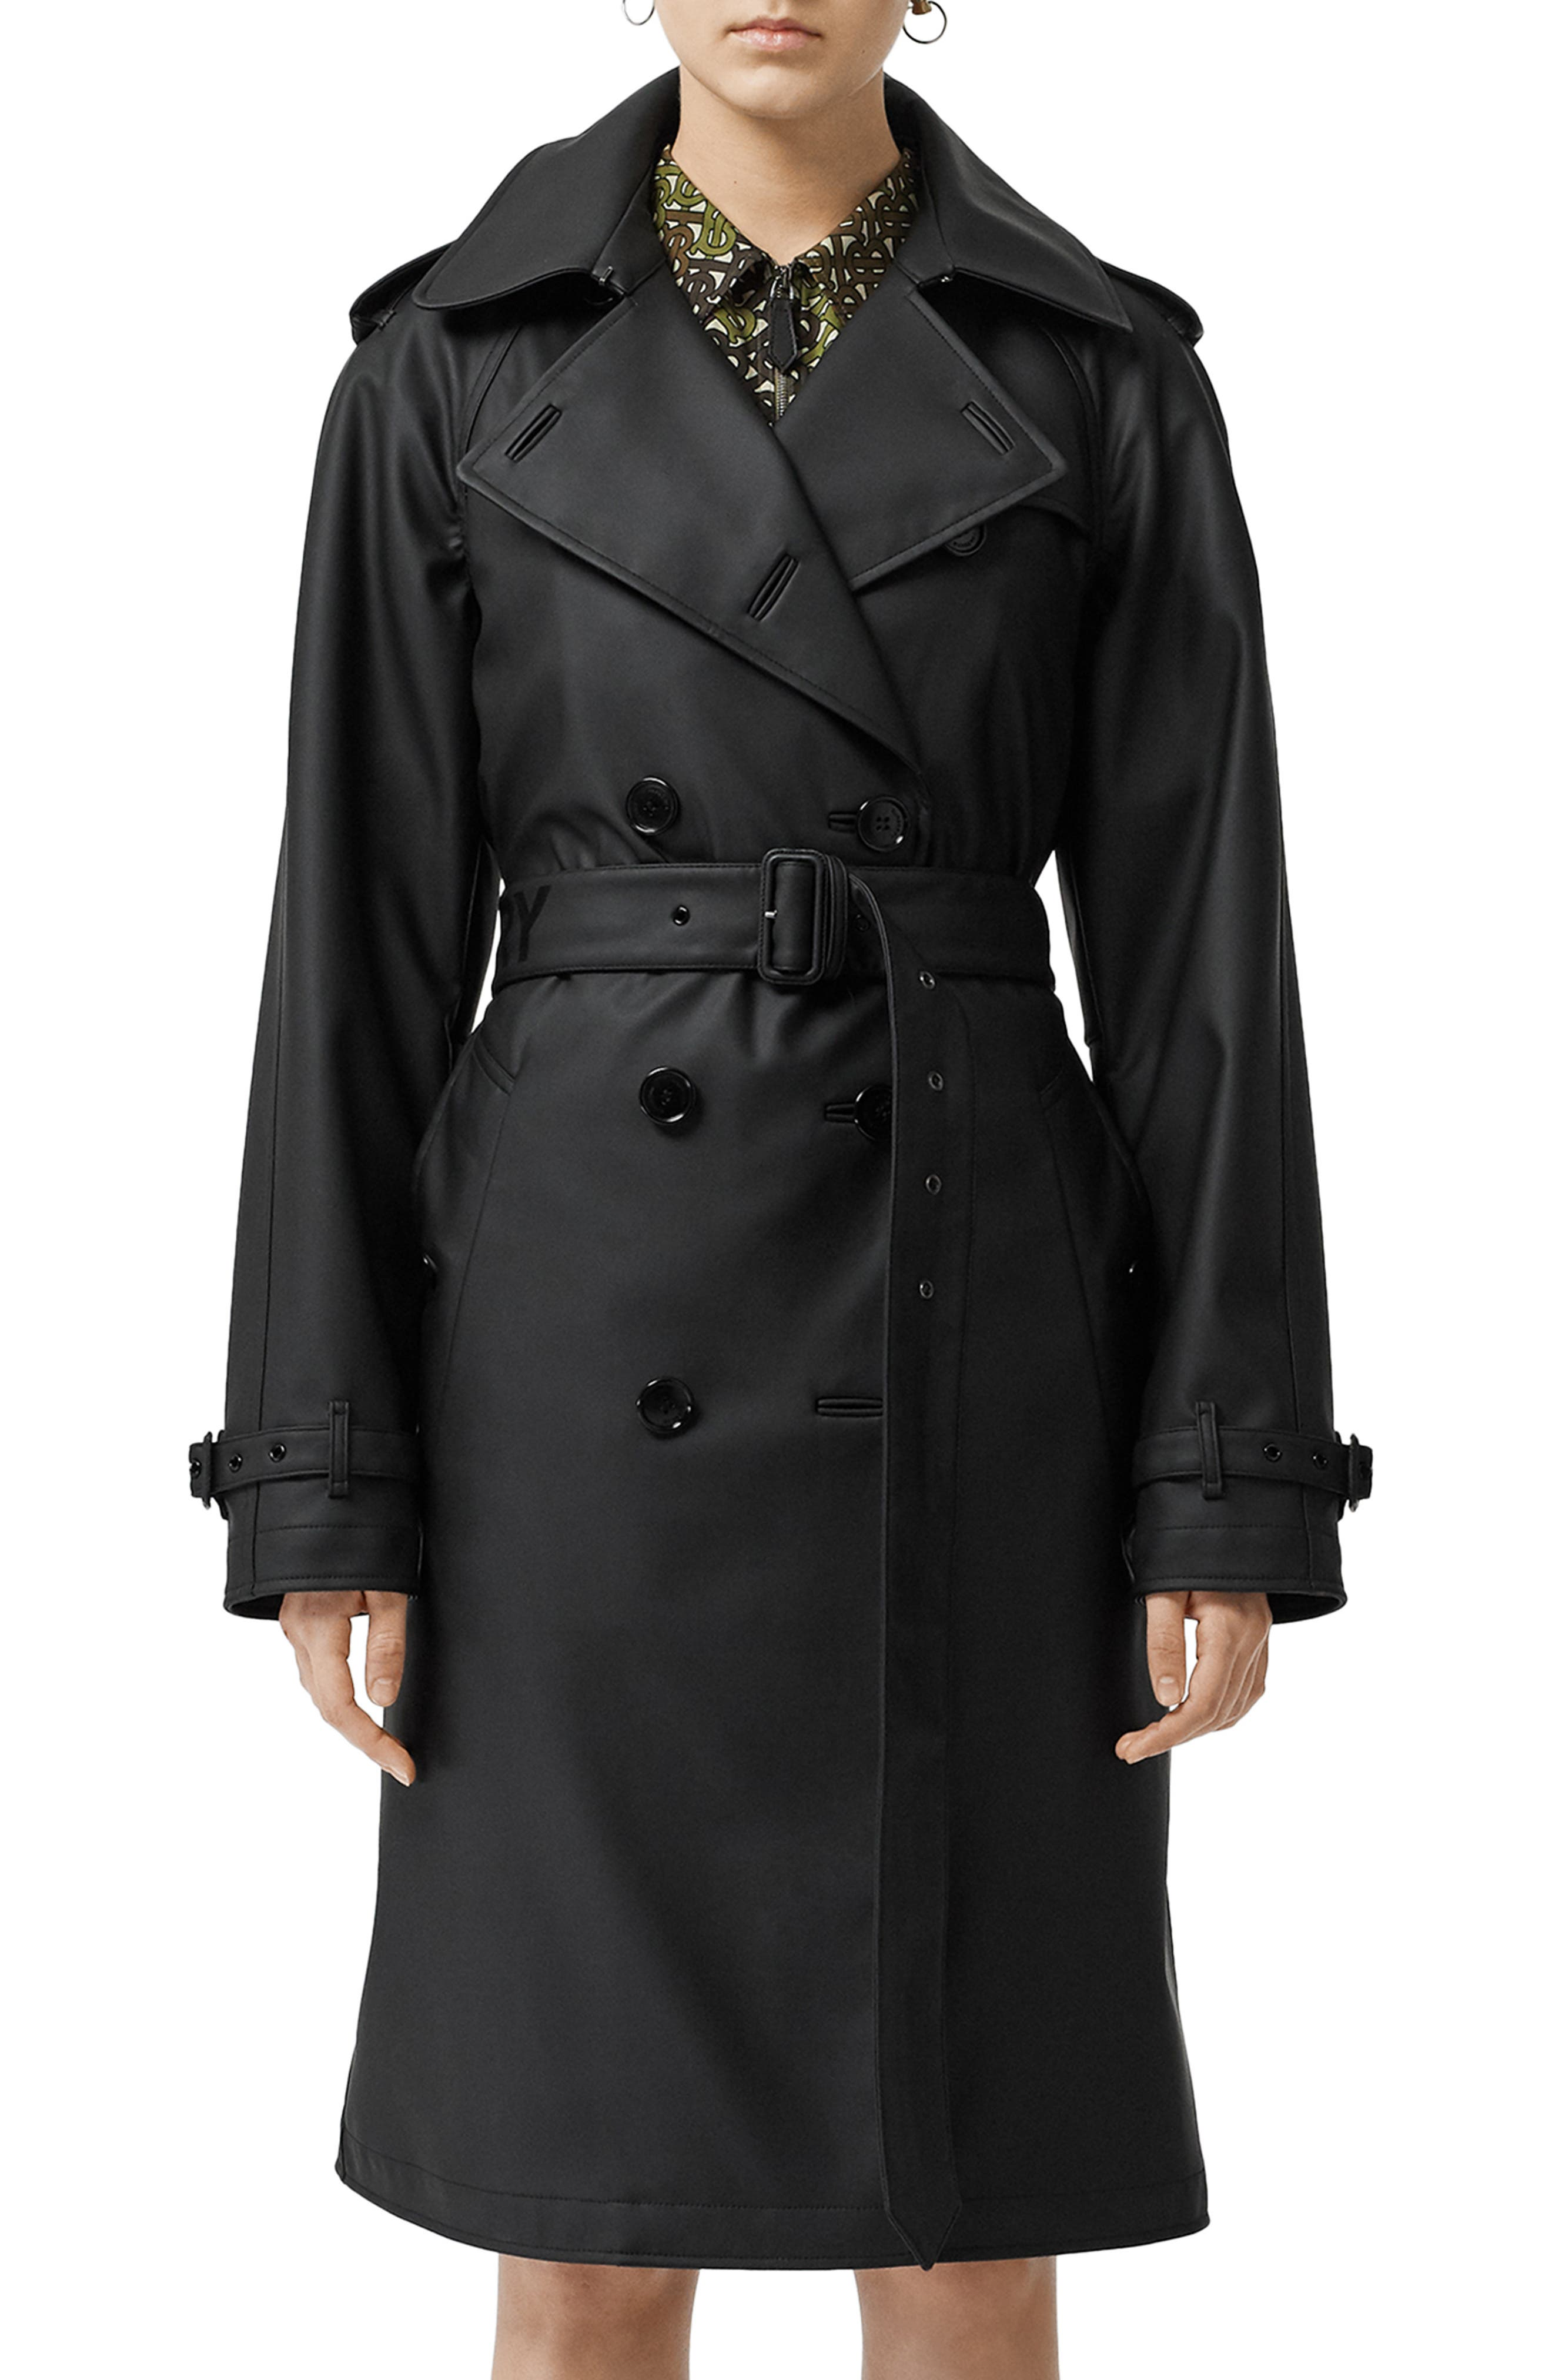 BURBERRY, Curradine Waterproof Rubberized Trench Coat, Main thumbnail 1, color, BLACK / WHITE